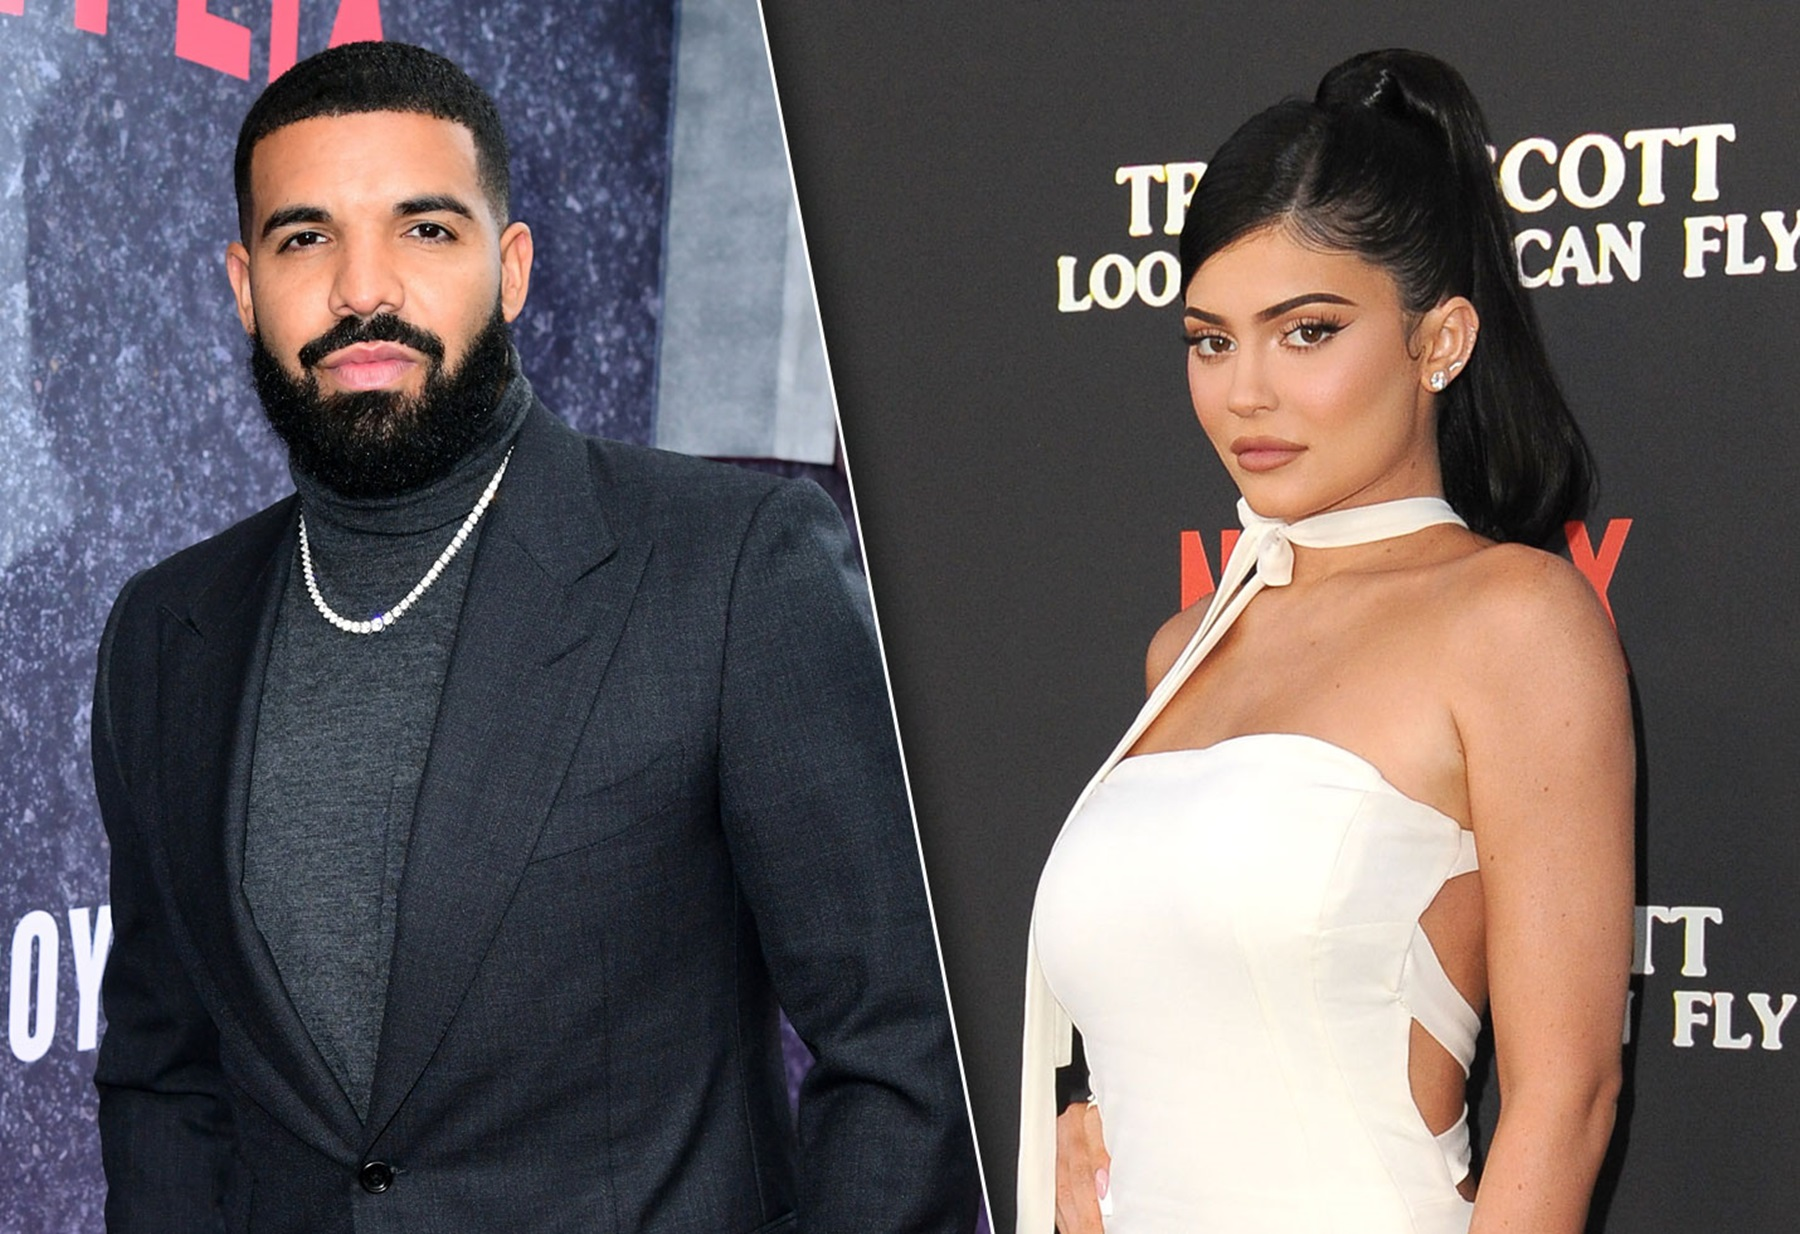 """kylie-jenner-is-afraid-to-officialize-her-romance-with-drake-for-this-reason-canadian-rapper-is-reportedly-trying-to-convince-her-that-they-can-make-it-work-after-her-split-from-ex-travis-scott"""